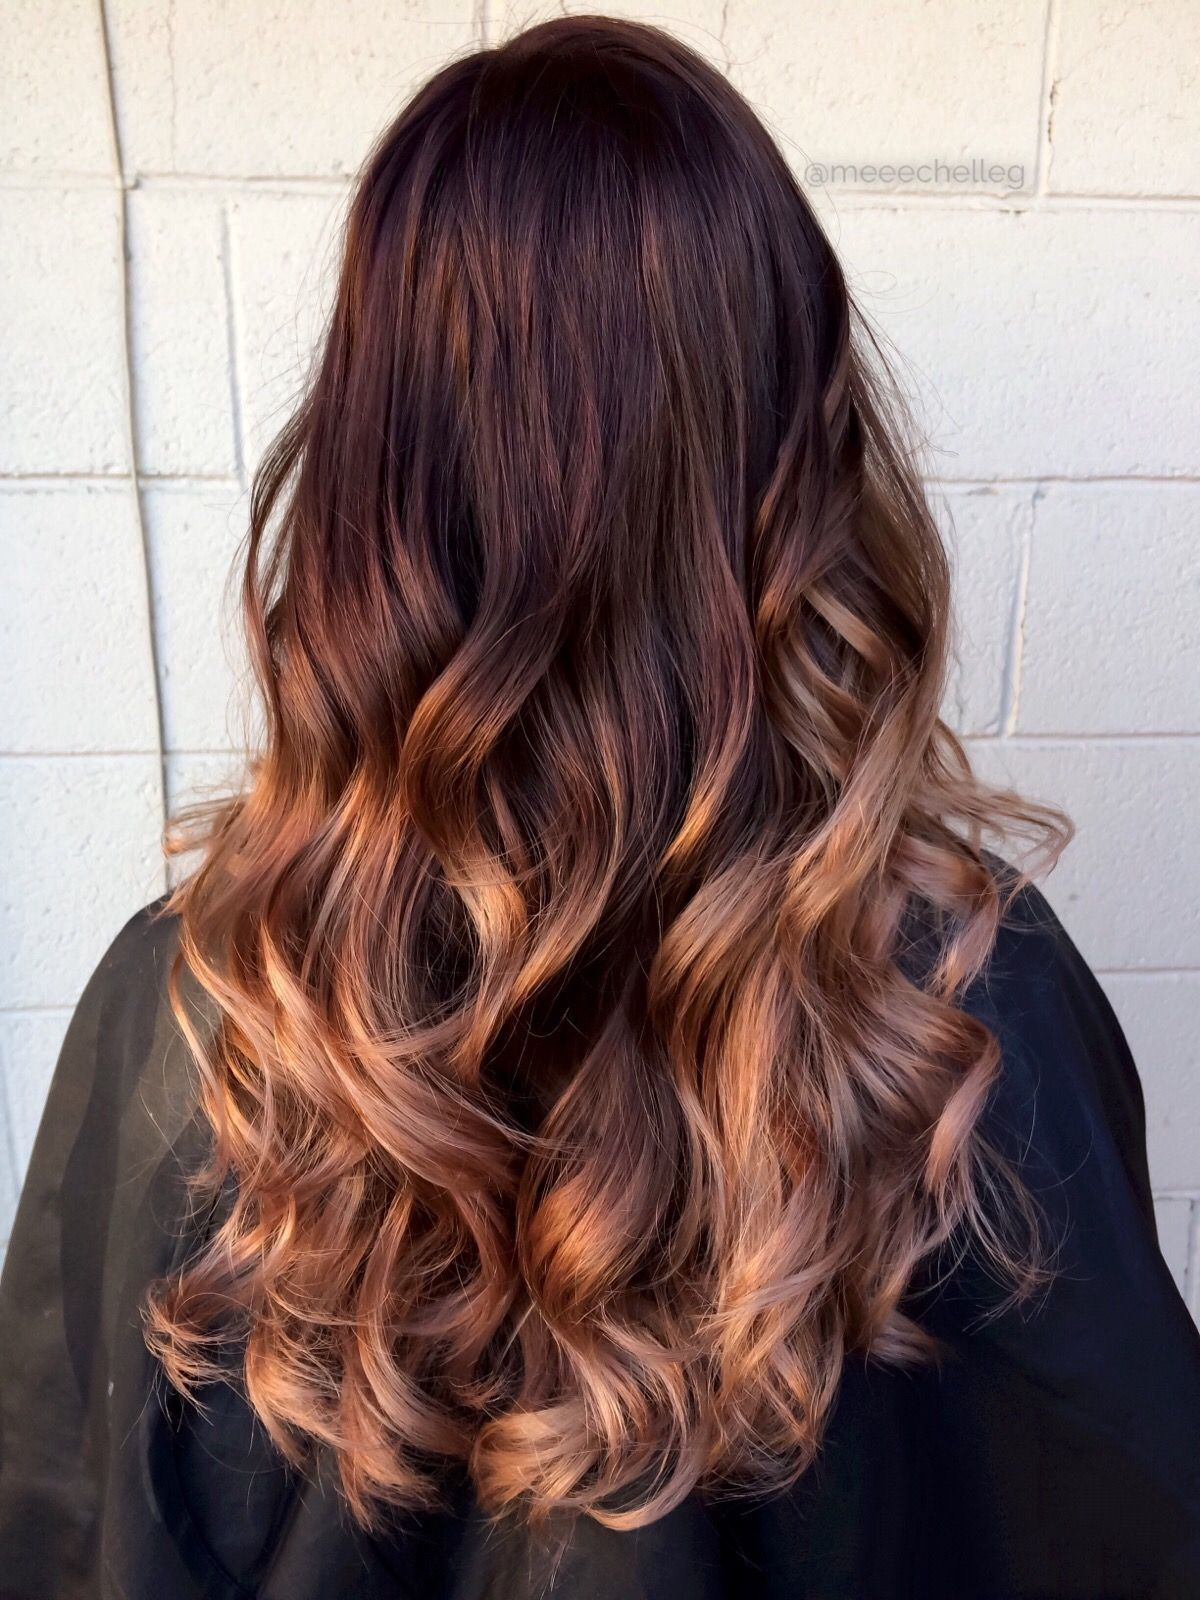 Pretty Ombre Ombre Long Hair Curls Curly Hair Dark Roots Dark Red Rose Gold Peach Light Ends Curly Hair Styles Curls For Long Hair Light Hair Color